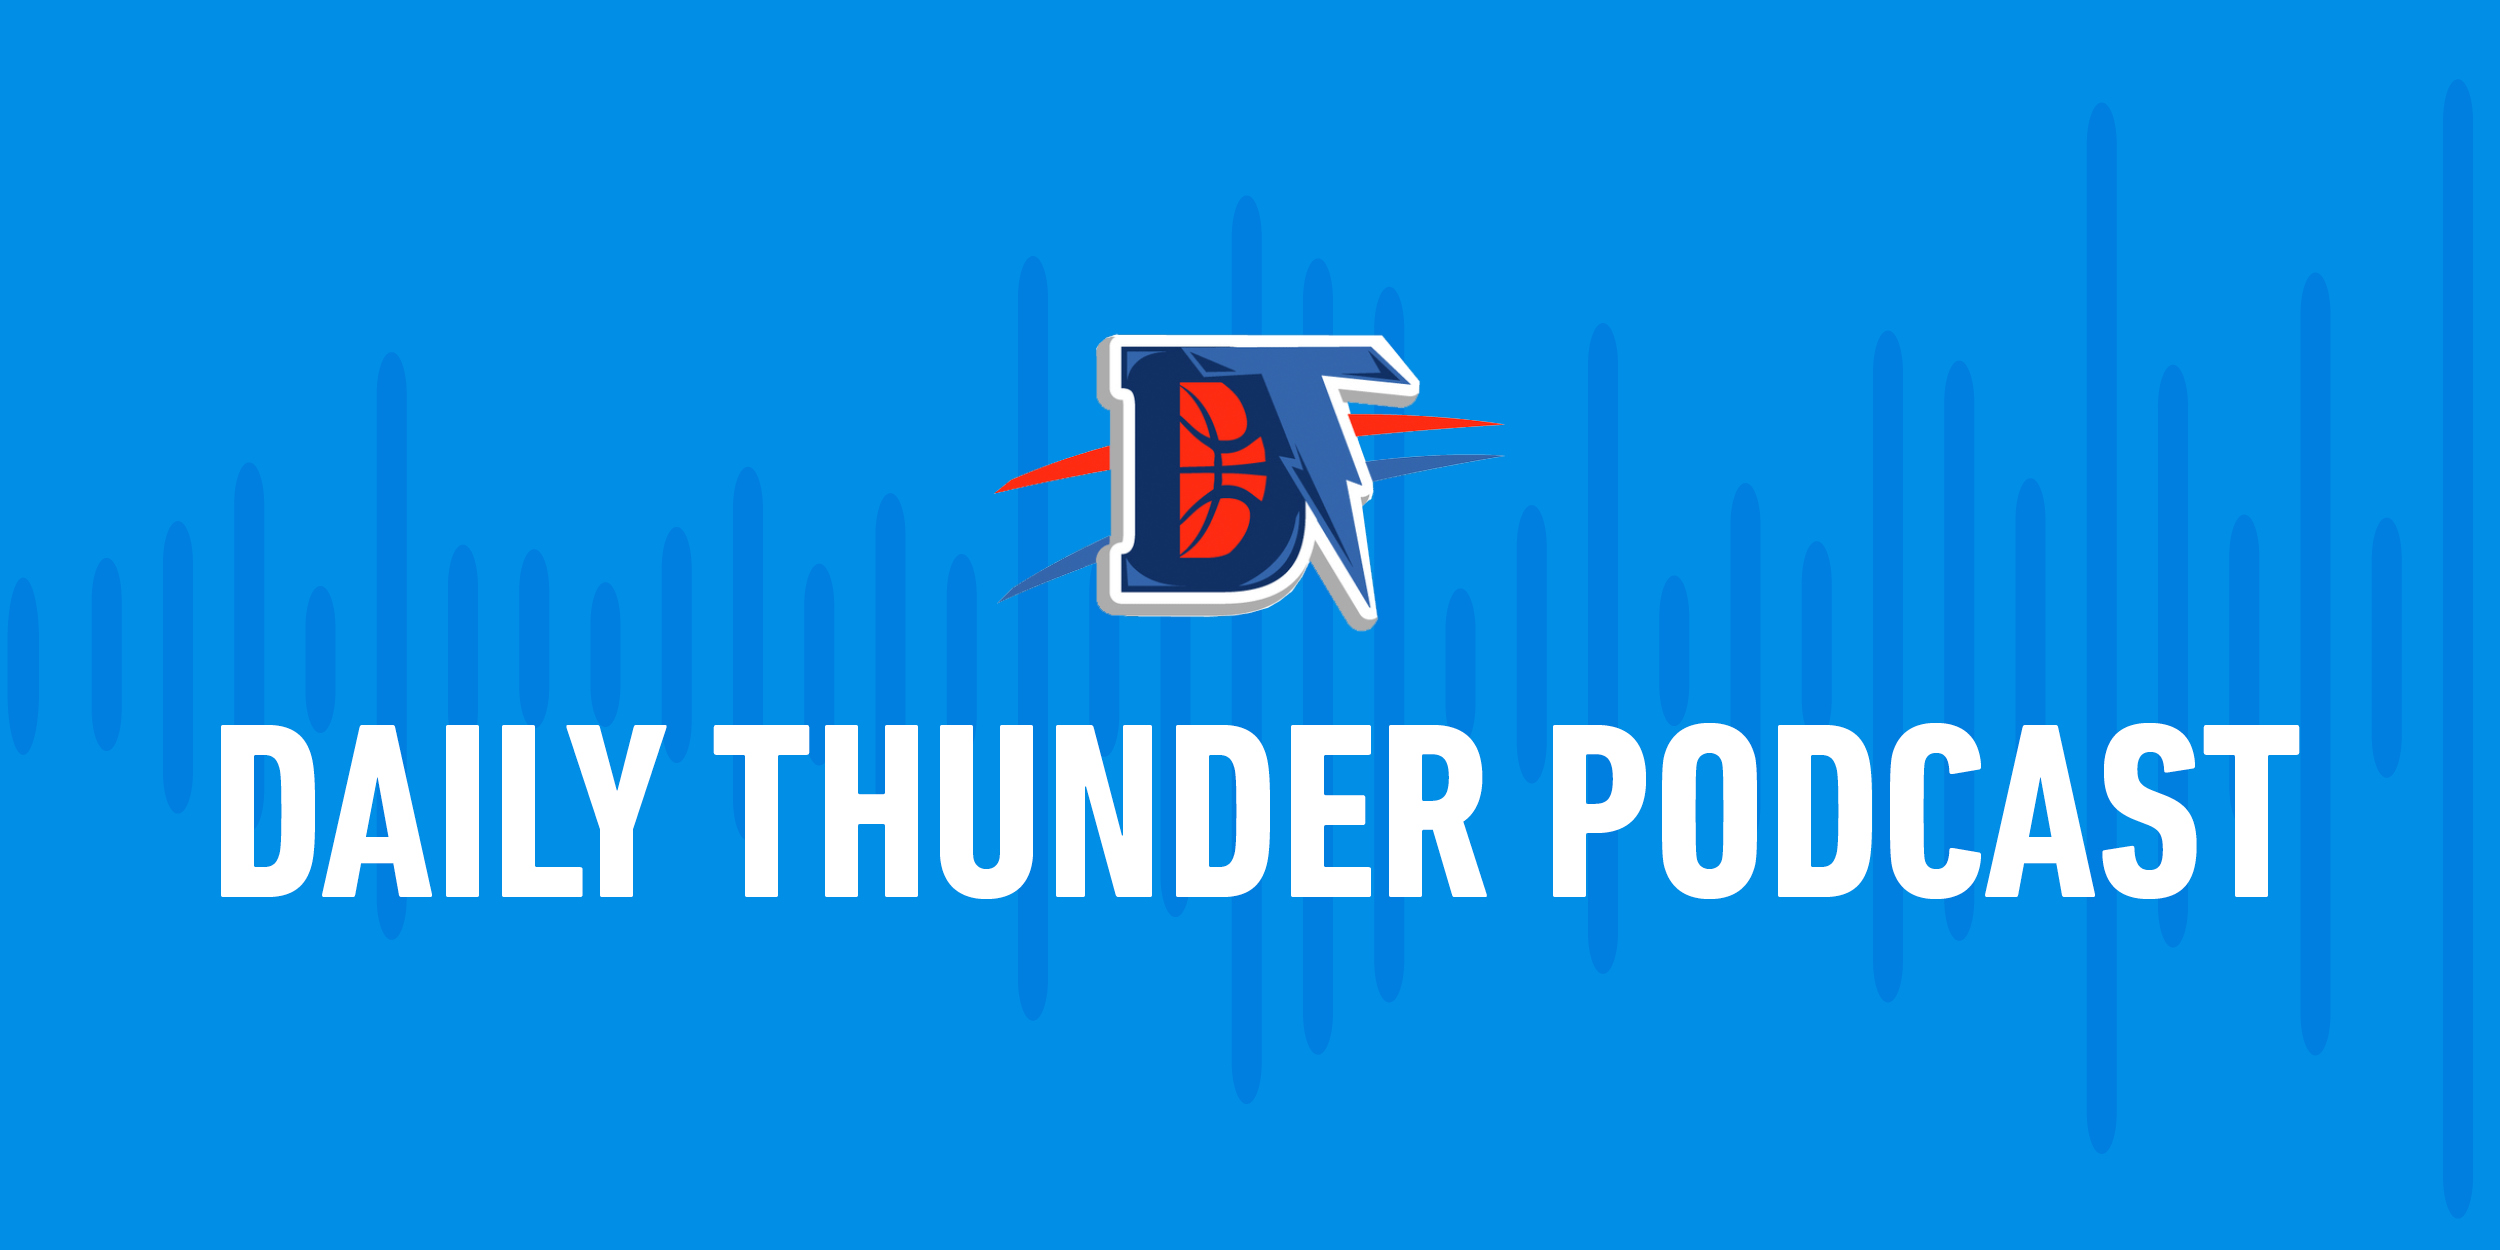 Daily Thunder Podcast Presents: Reddit AMA